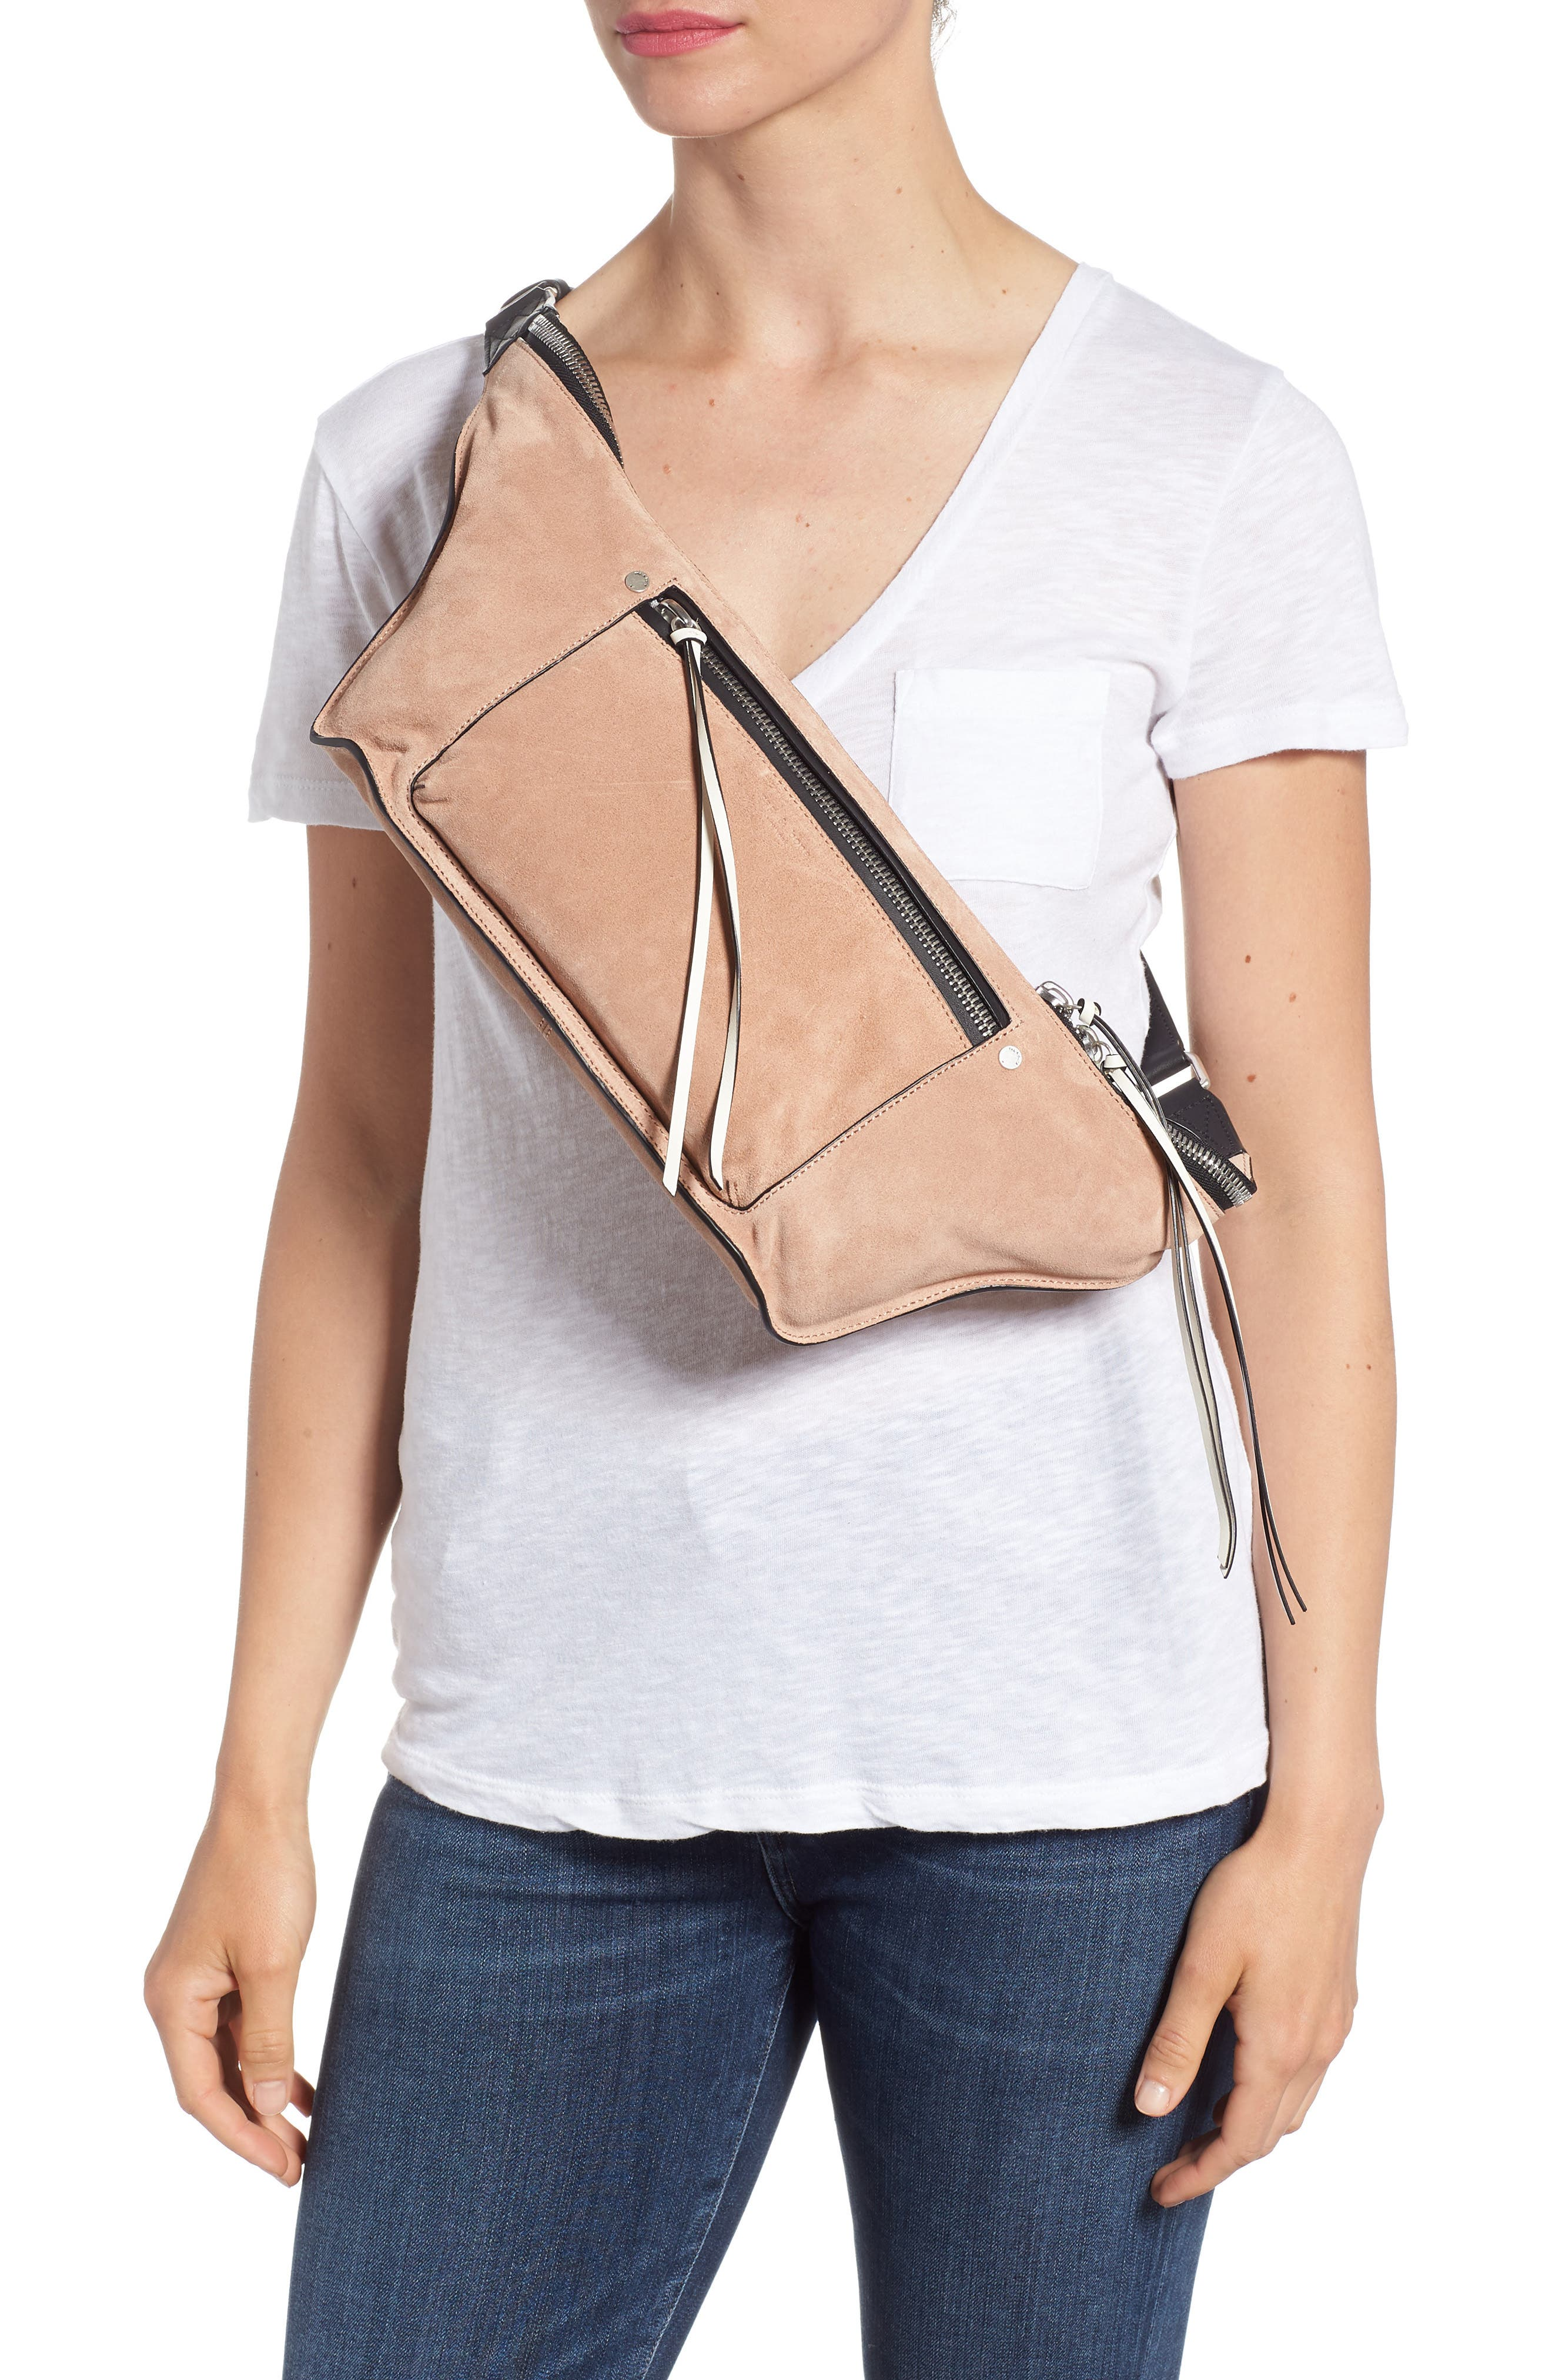 Elliot Leather Fanny Pack,                             Alternate thumbnail 3, color,                             NUDE SUEDE